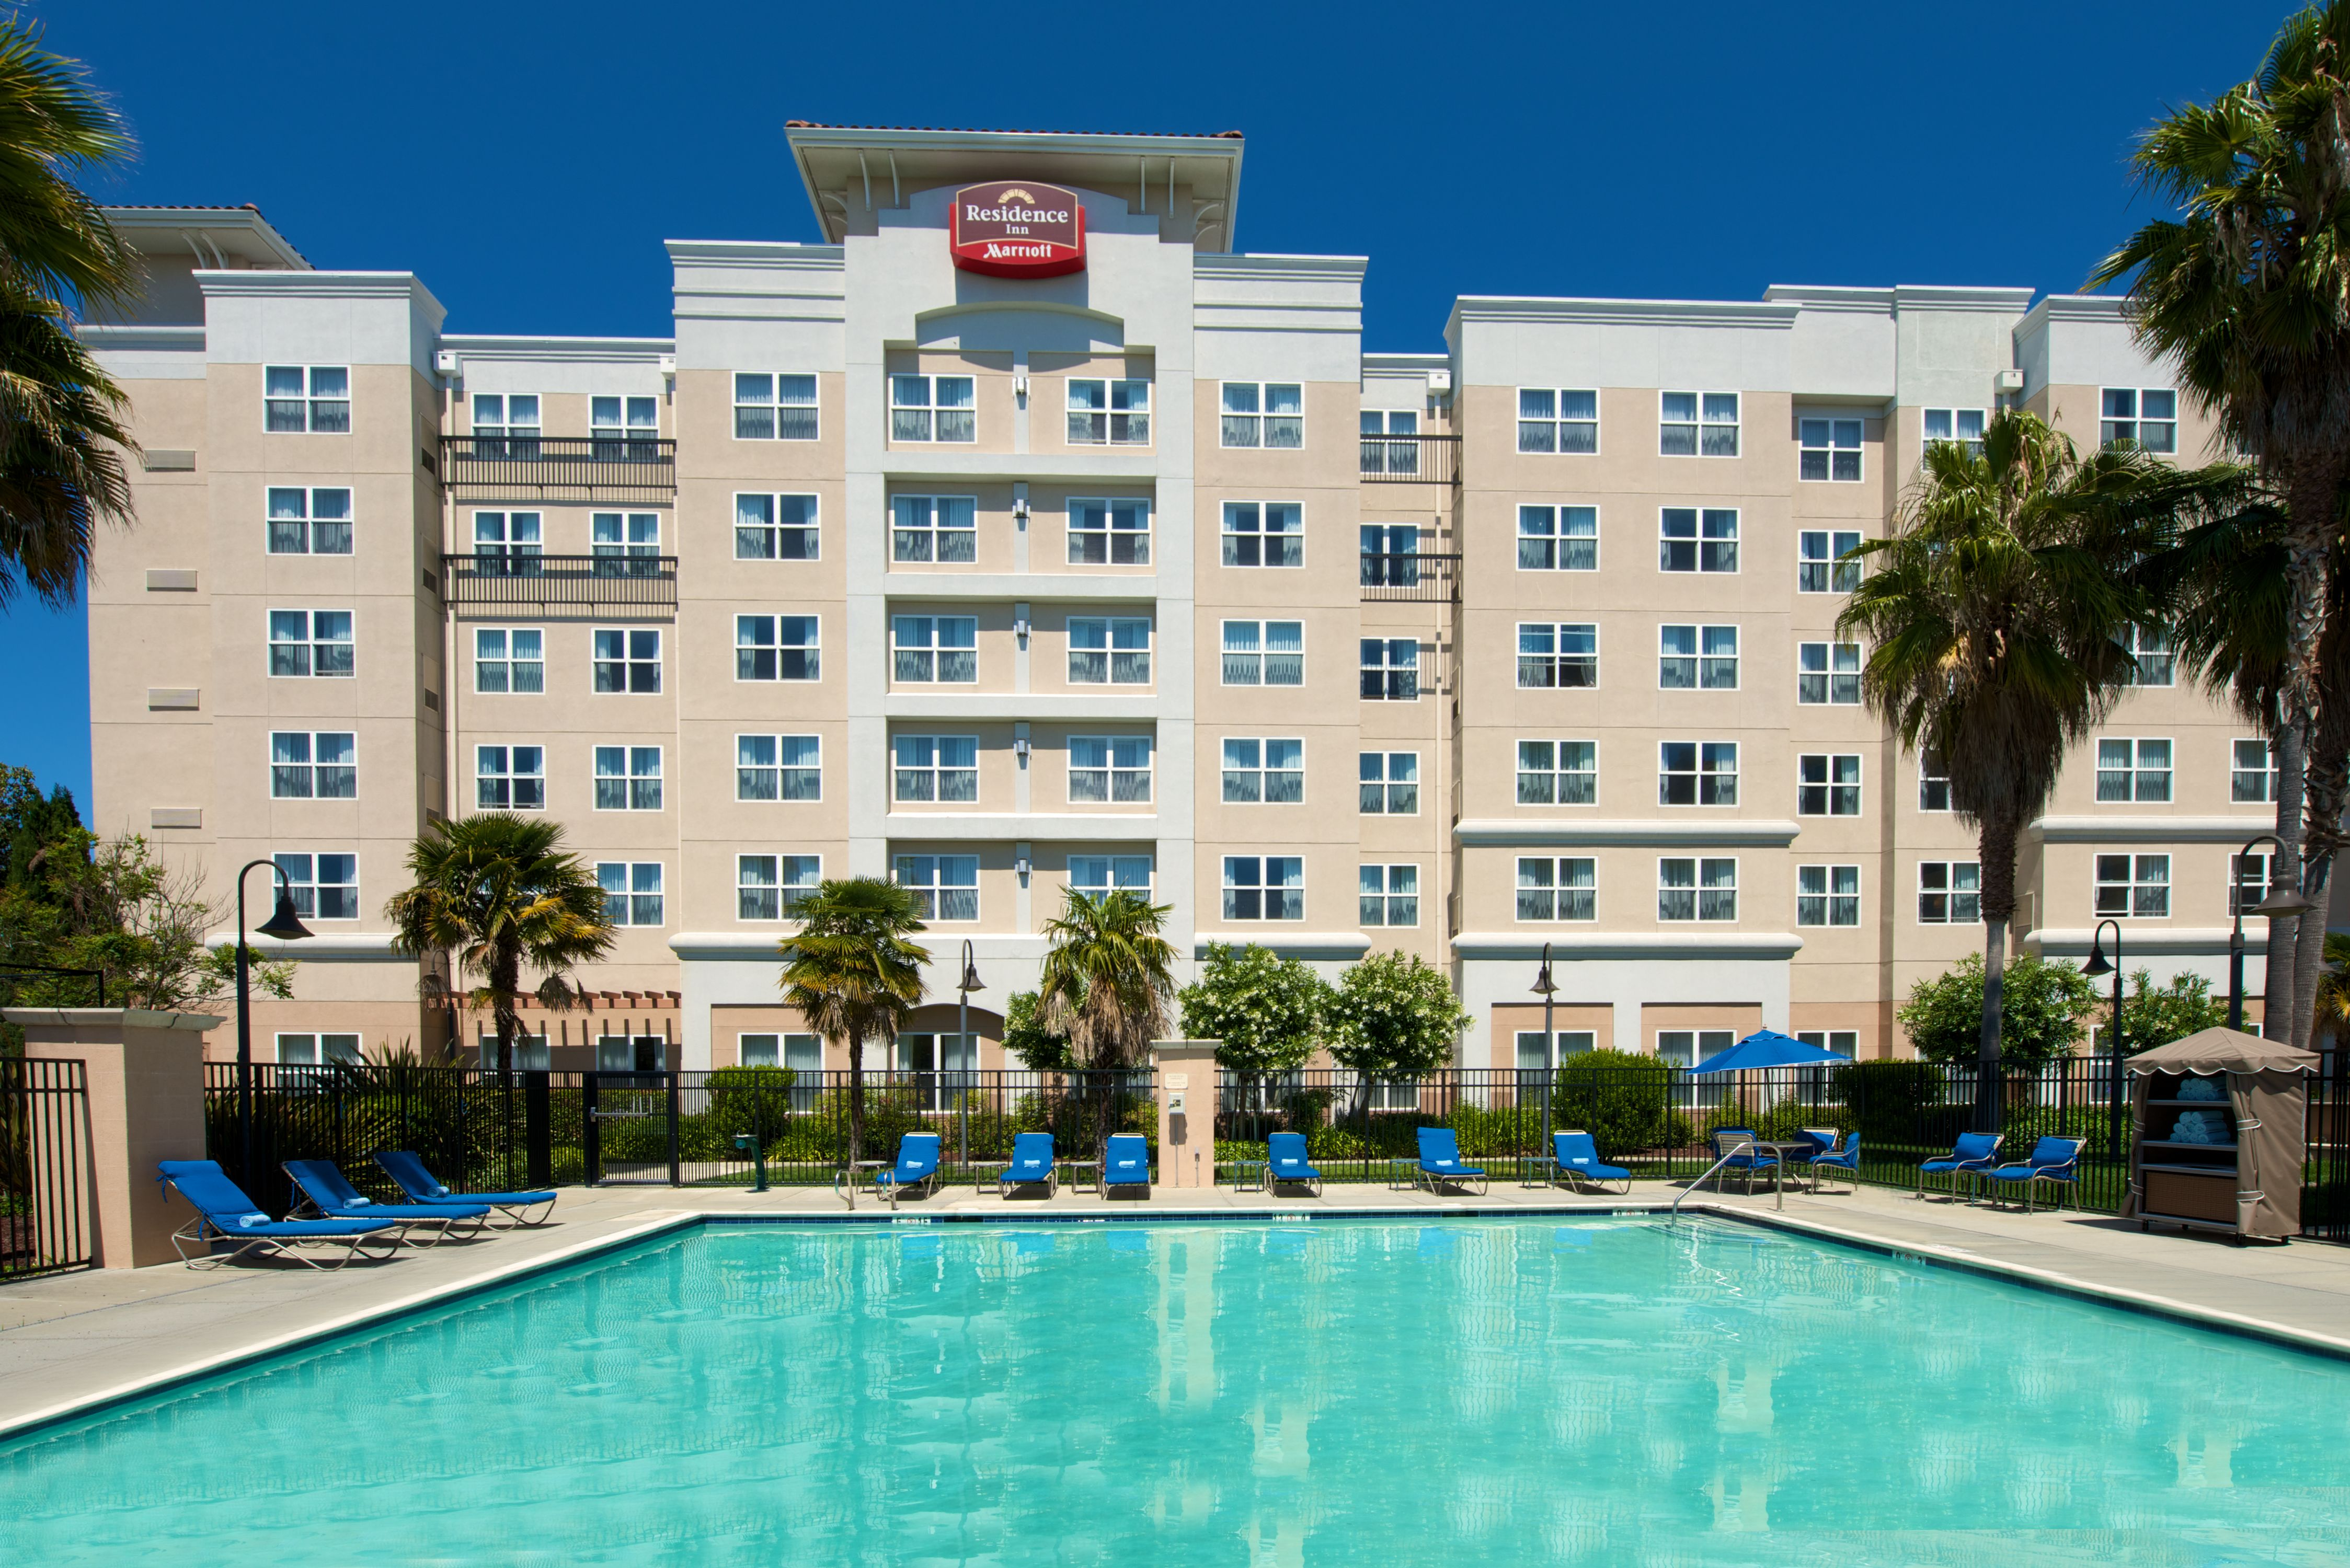 Residence Inn by Marriott Newark Silicon Valley image 0